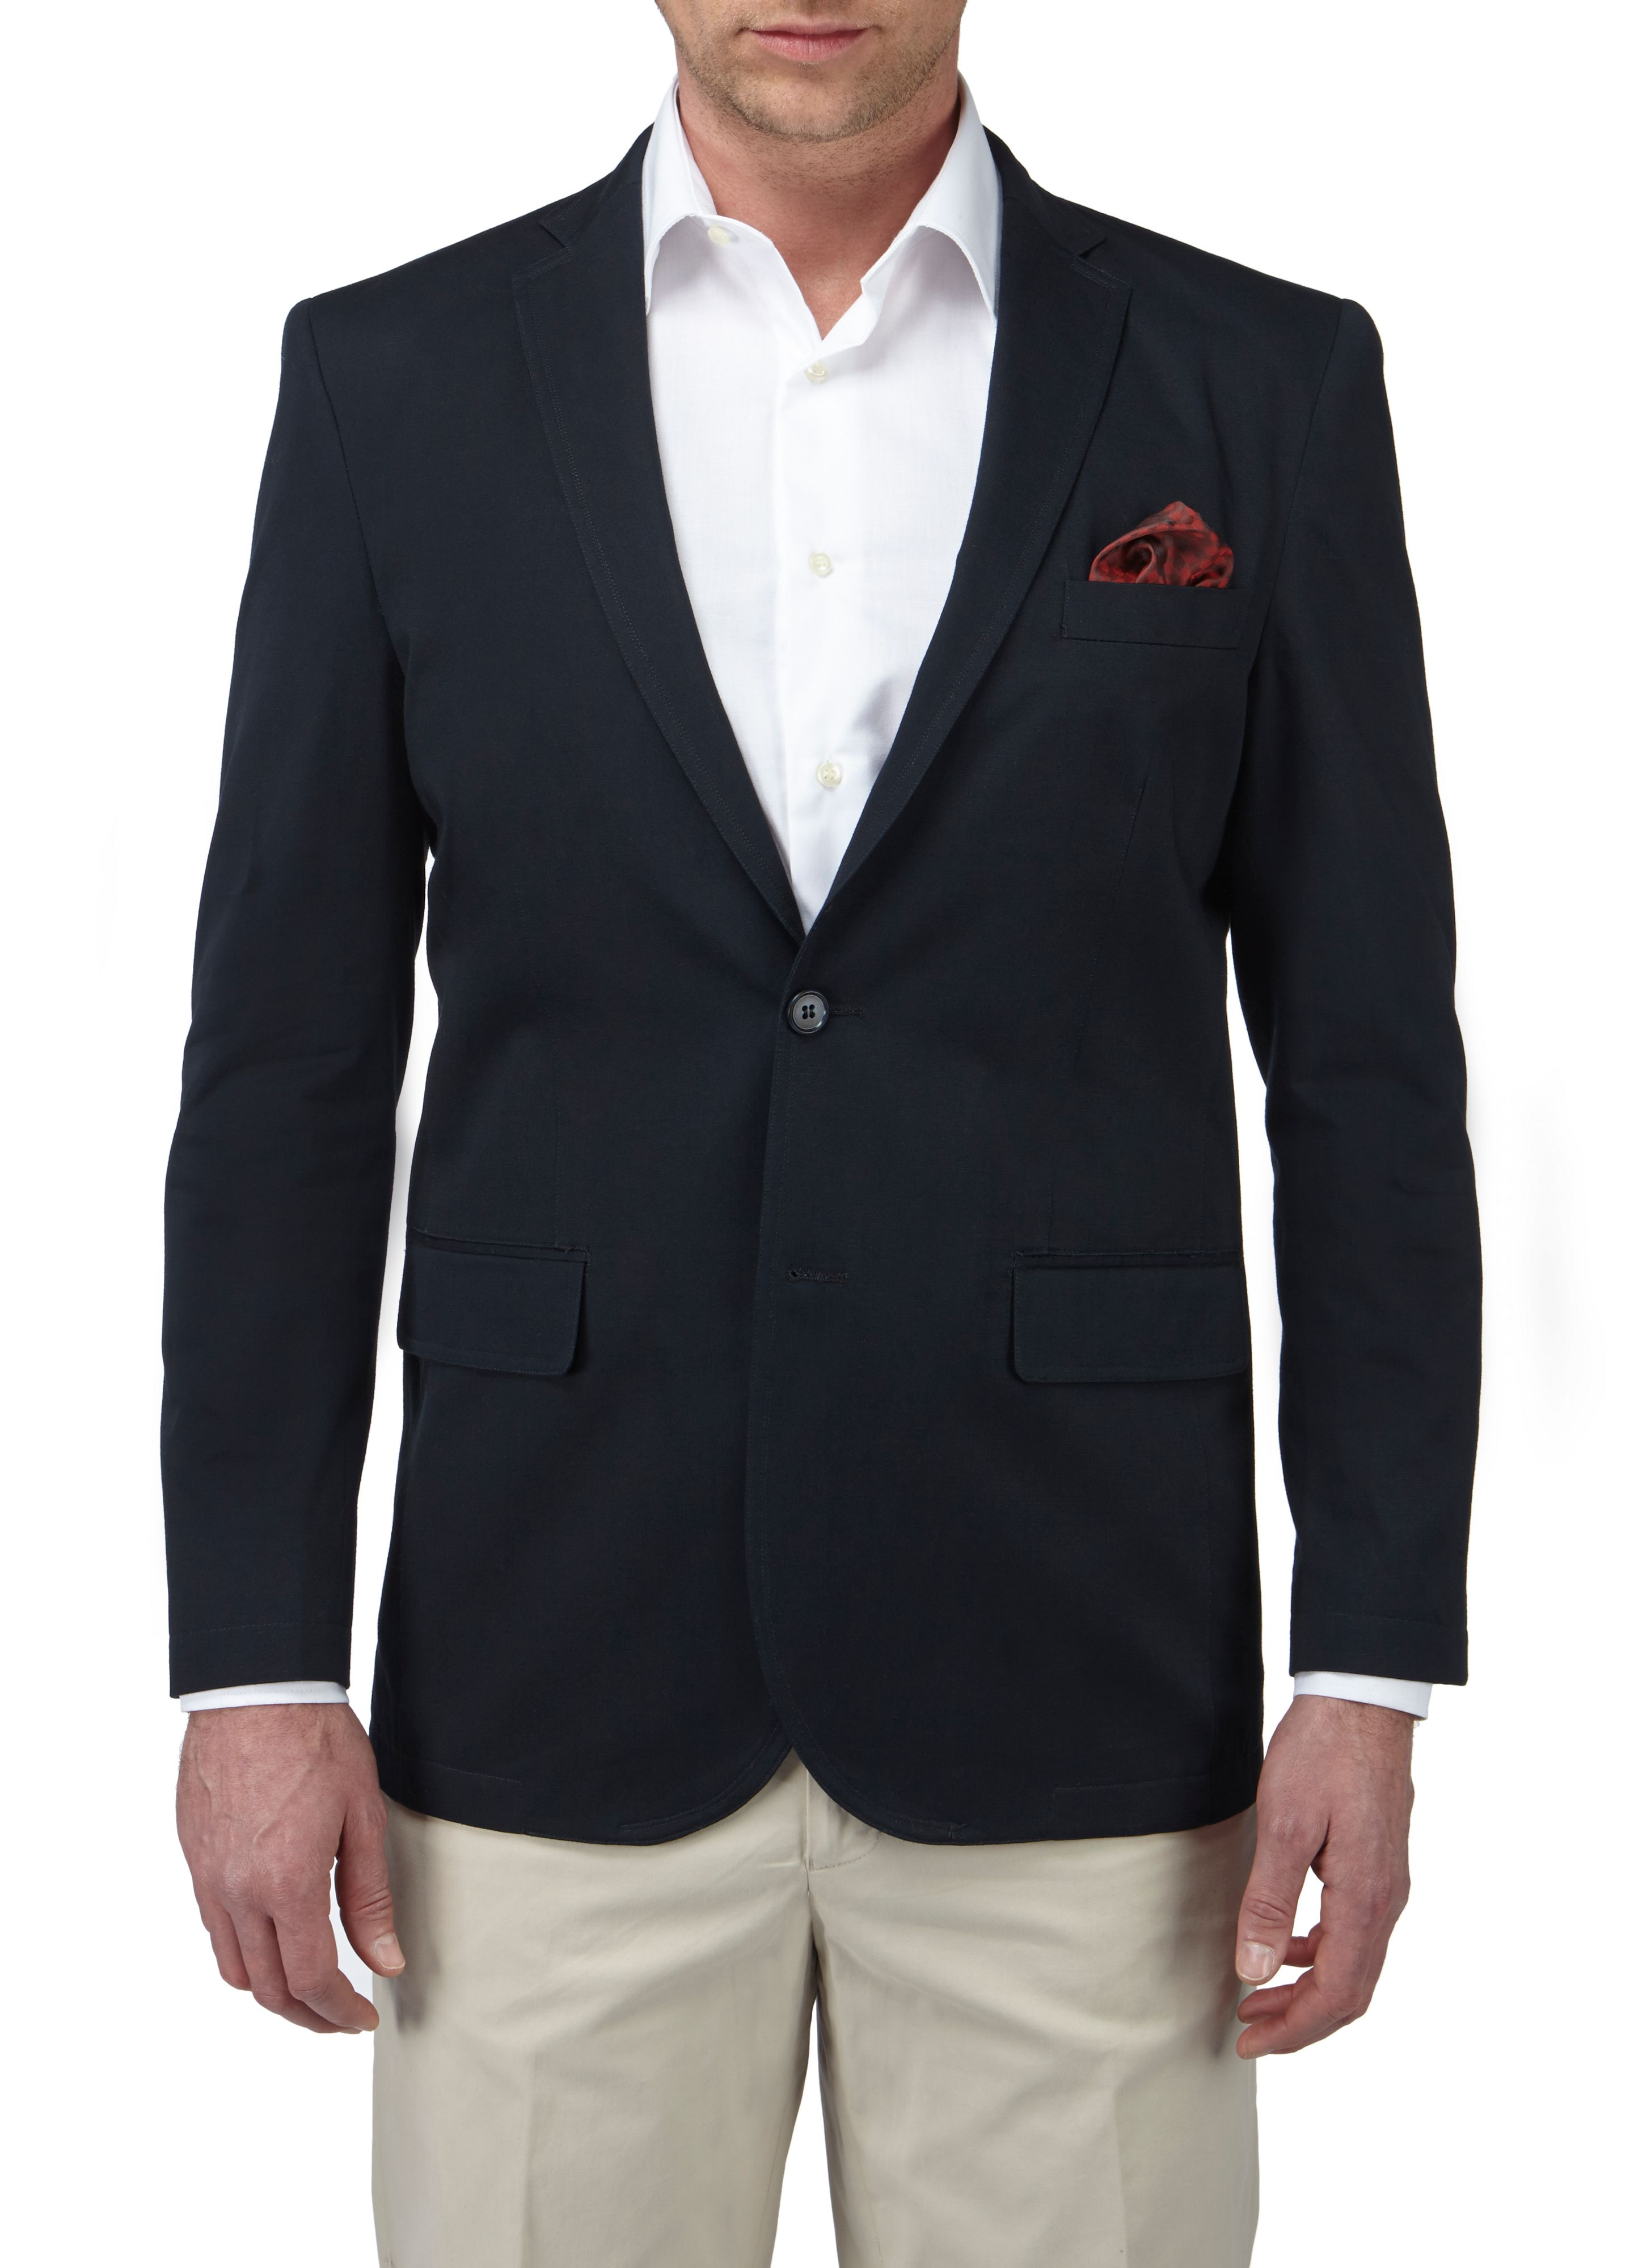 Palermo single breasted blazer